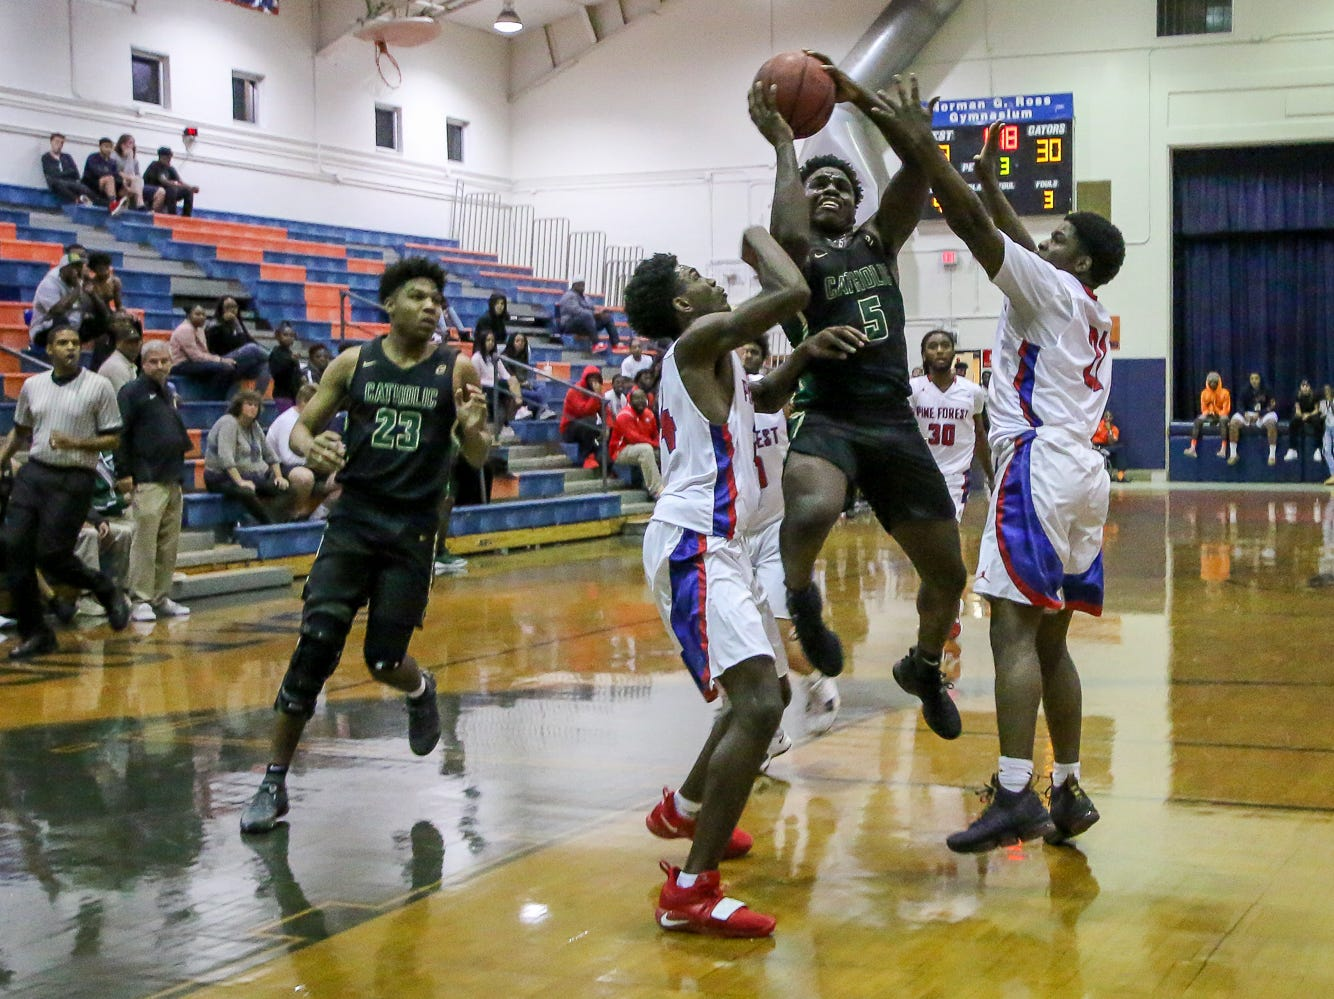 Pensacola Catholic's Jacobi Jackson (5) jumps between to Pine Forest defenders on his way toward the basket in the preseason basketball jamboree at Escambia High School on Tuesday, November 20, 2018.